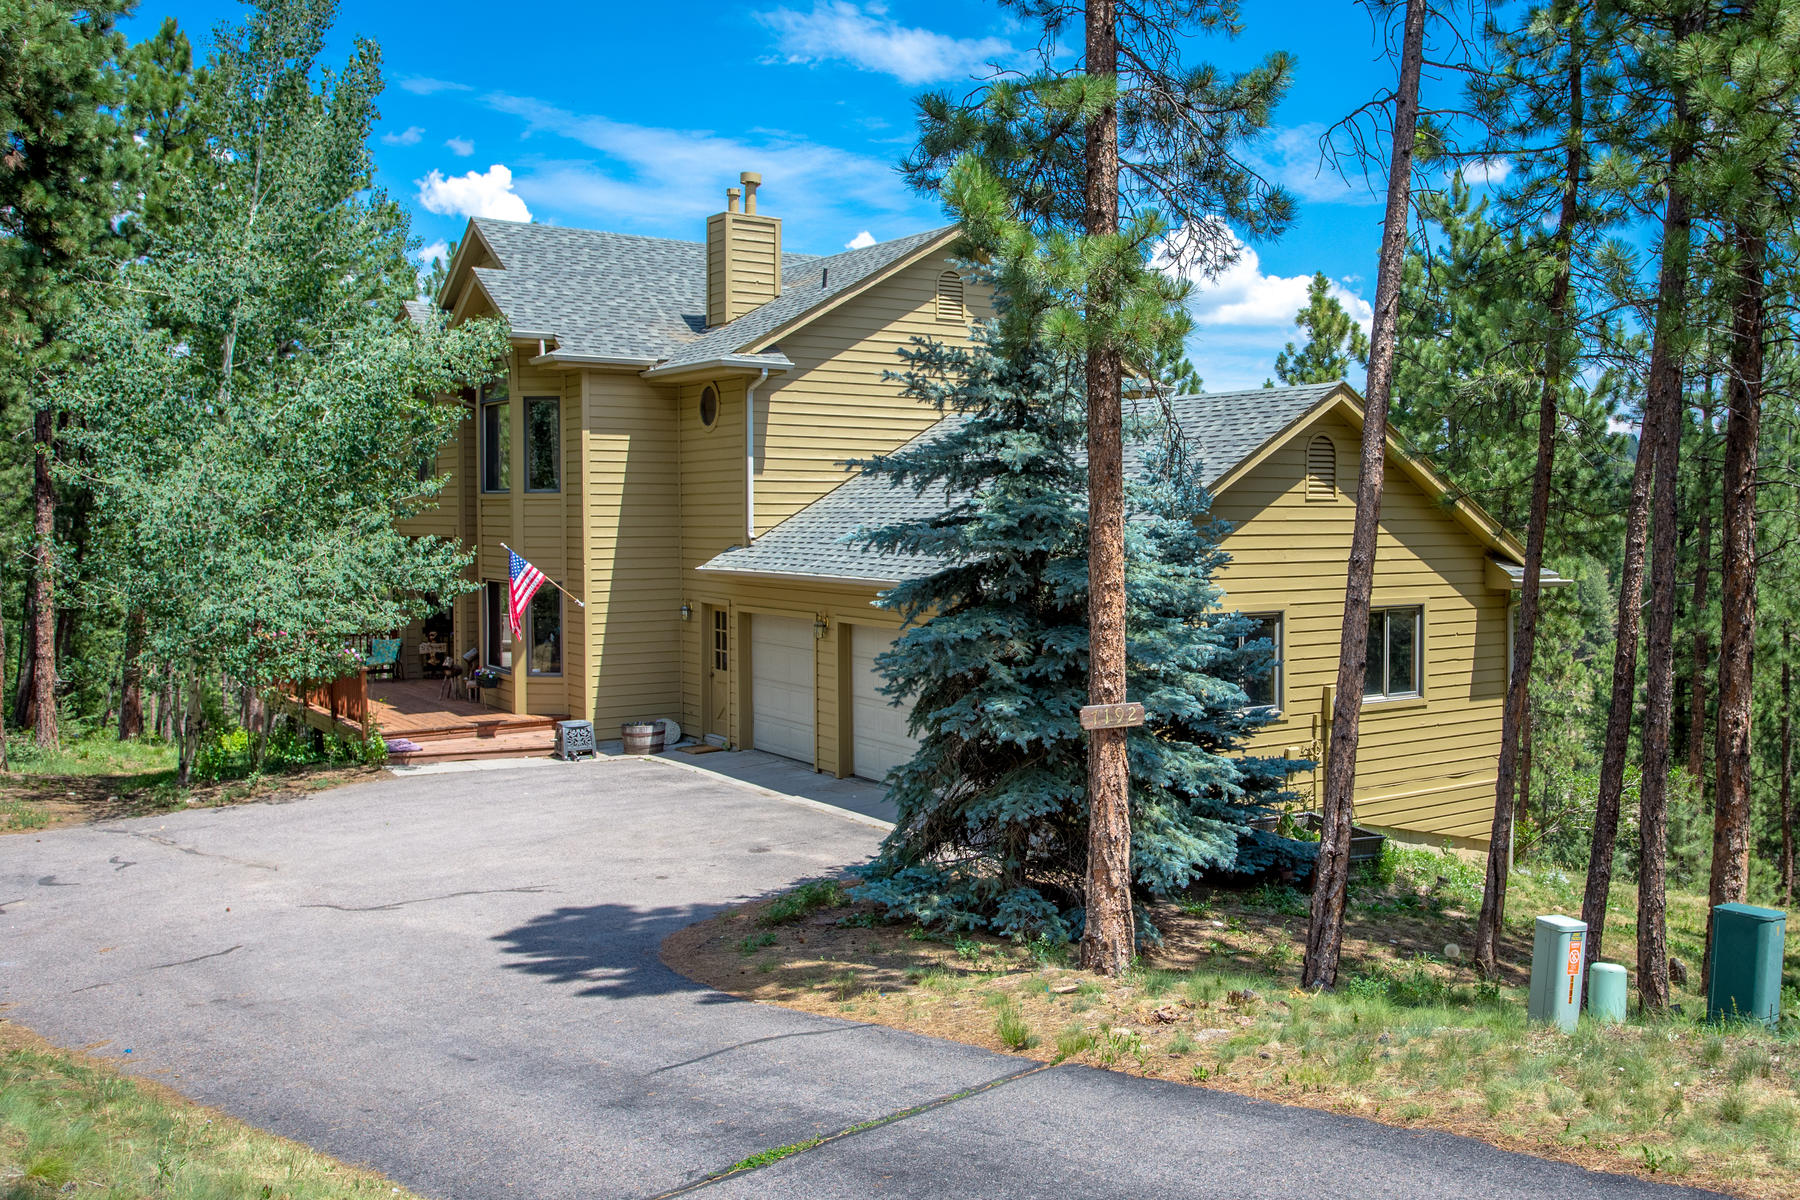 Single Family Home for Active at 7192 Pinewood Drive 7192 Pinewood Drive, Evergreen, Colorado 80439 United States